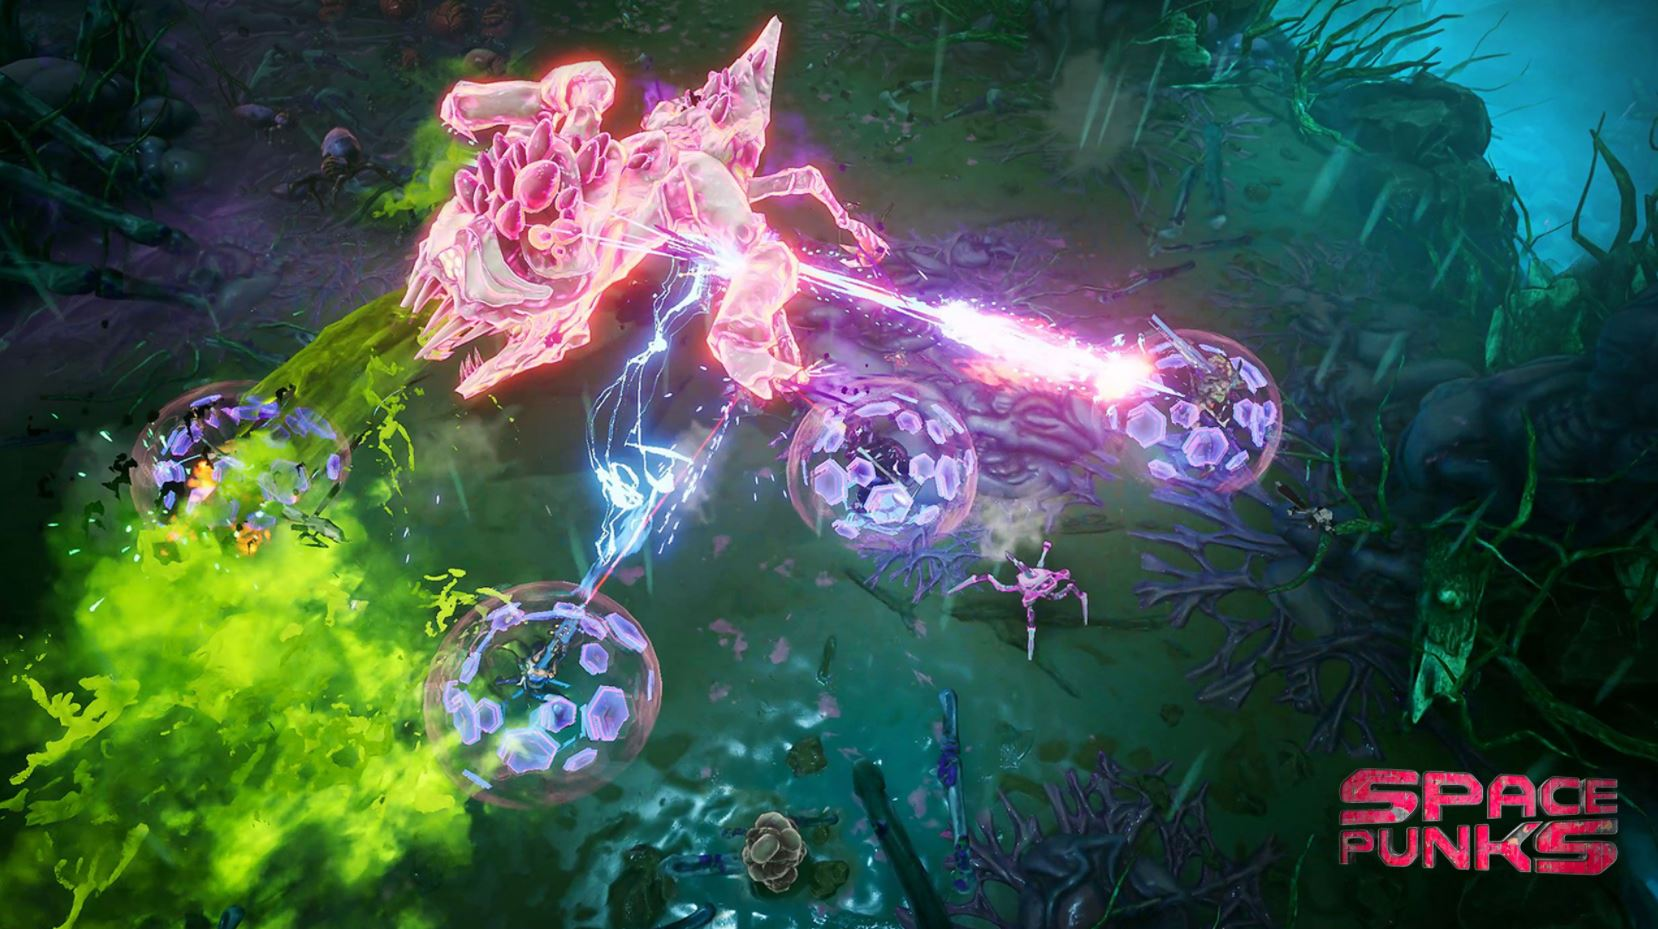 space-punks-interview-how-flying-wild-hog-are-evolving-and-experimenting-beyond-shadow-warrior-2